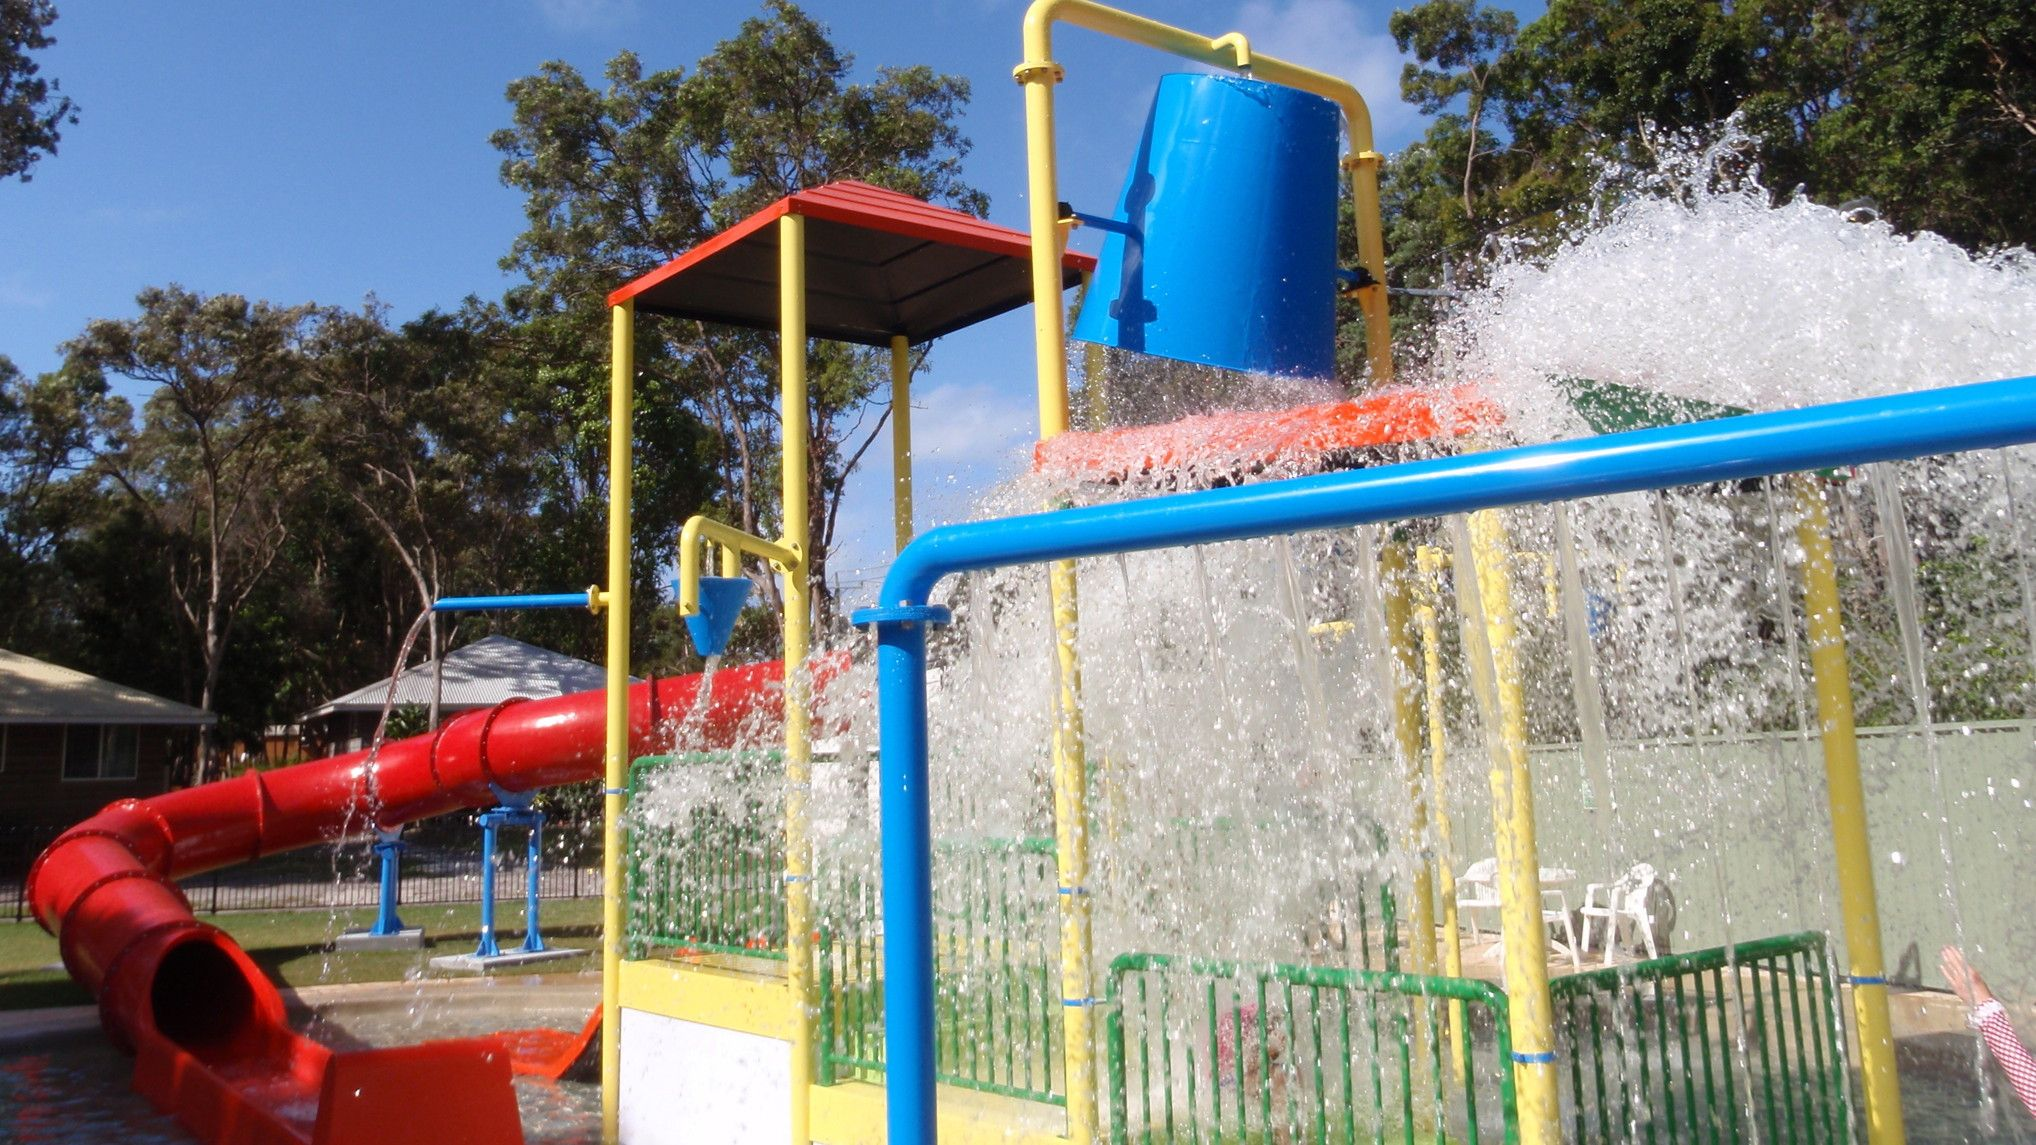 BIG4 Bonny Hills has great activities for both adults and kids to make your stay fun. swimming pools, putt putt golf, inflatable trampoline, karts for hire, table tennis #big4bonnyhills #portmacquarie #camping #caravanning